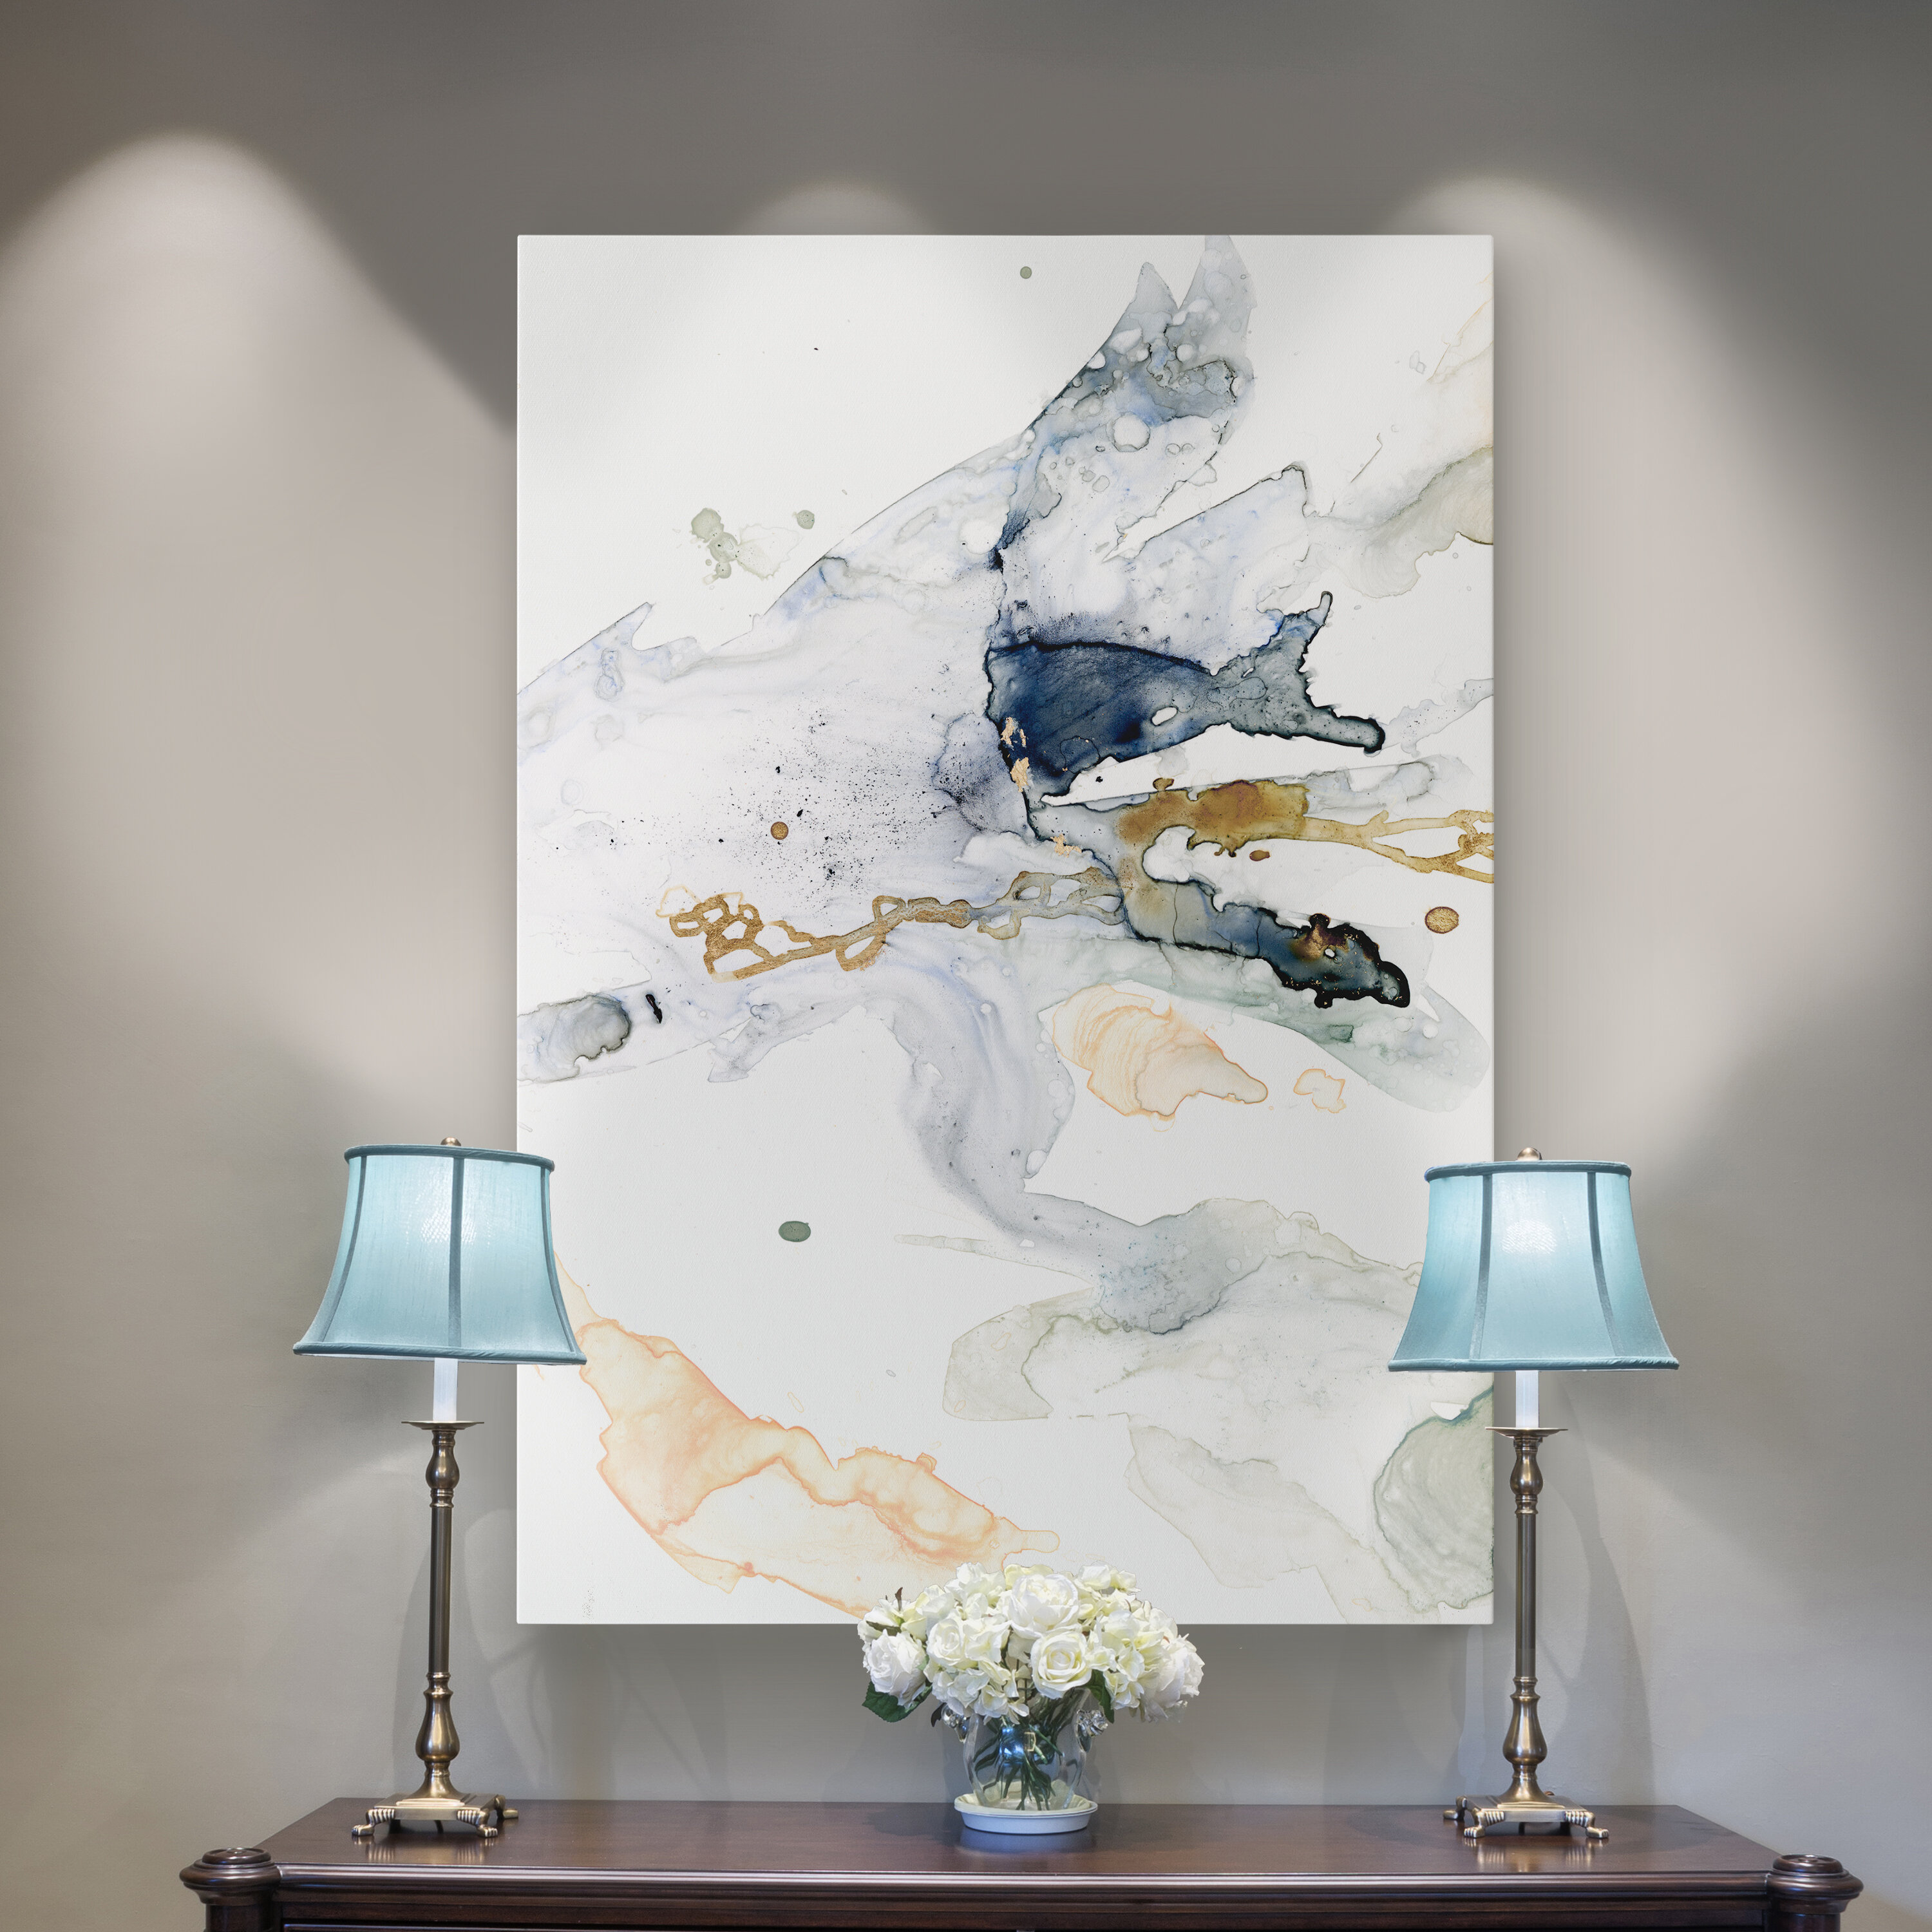 Acrylic Painting Wall Art You Ll Love In 2021 Wayfair